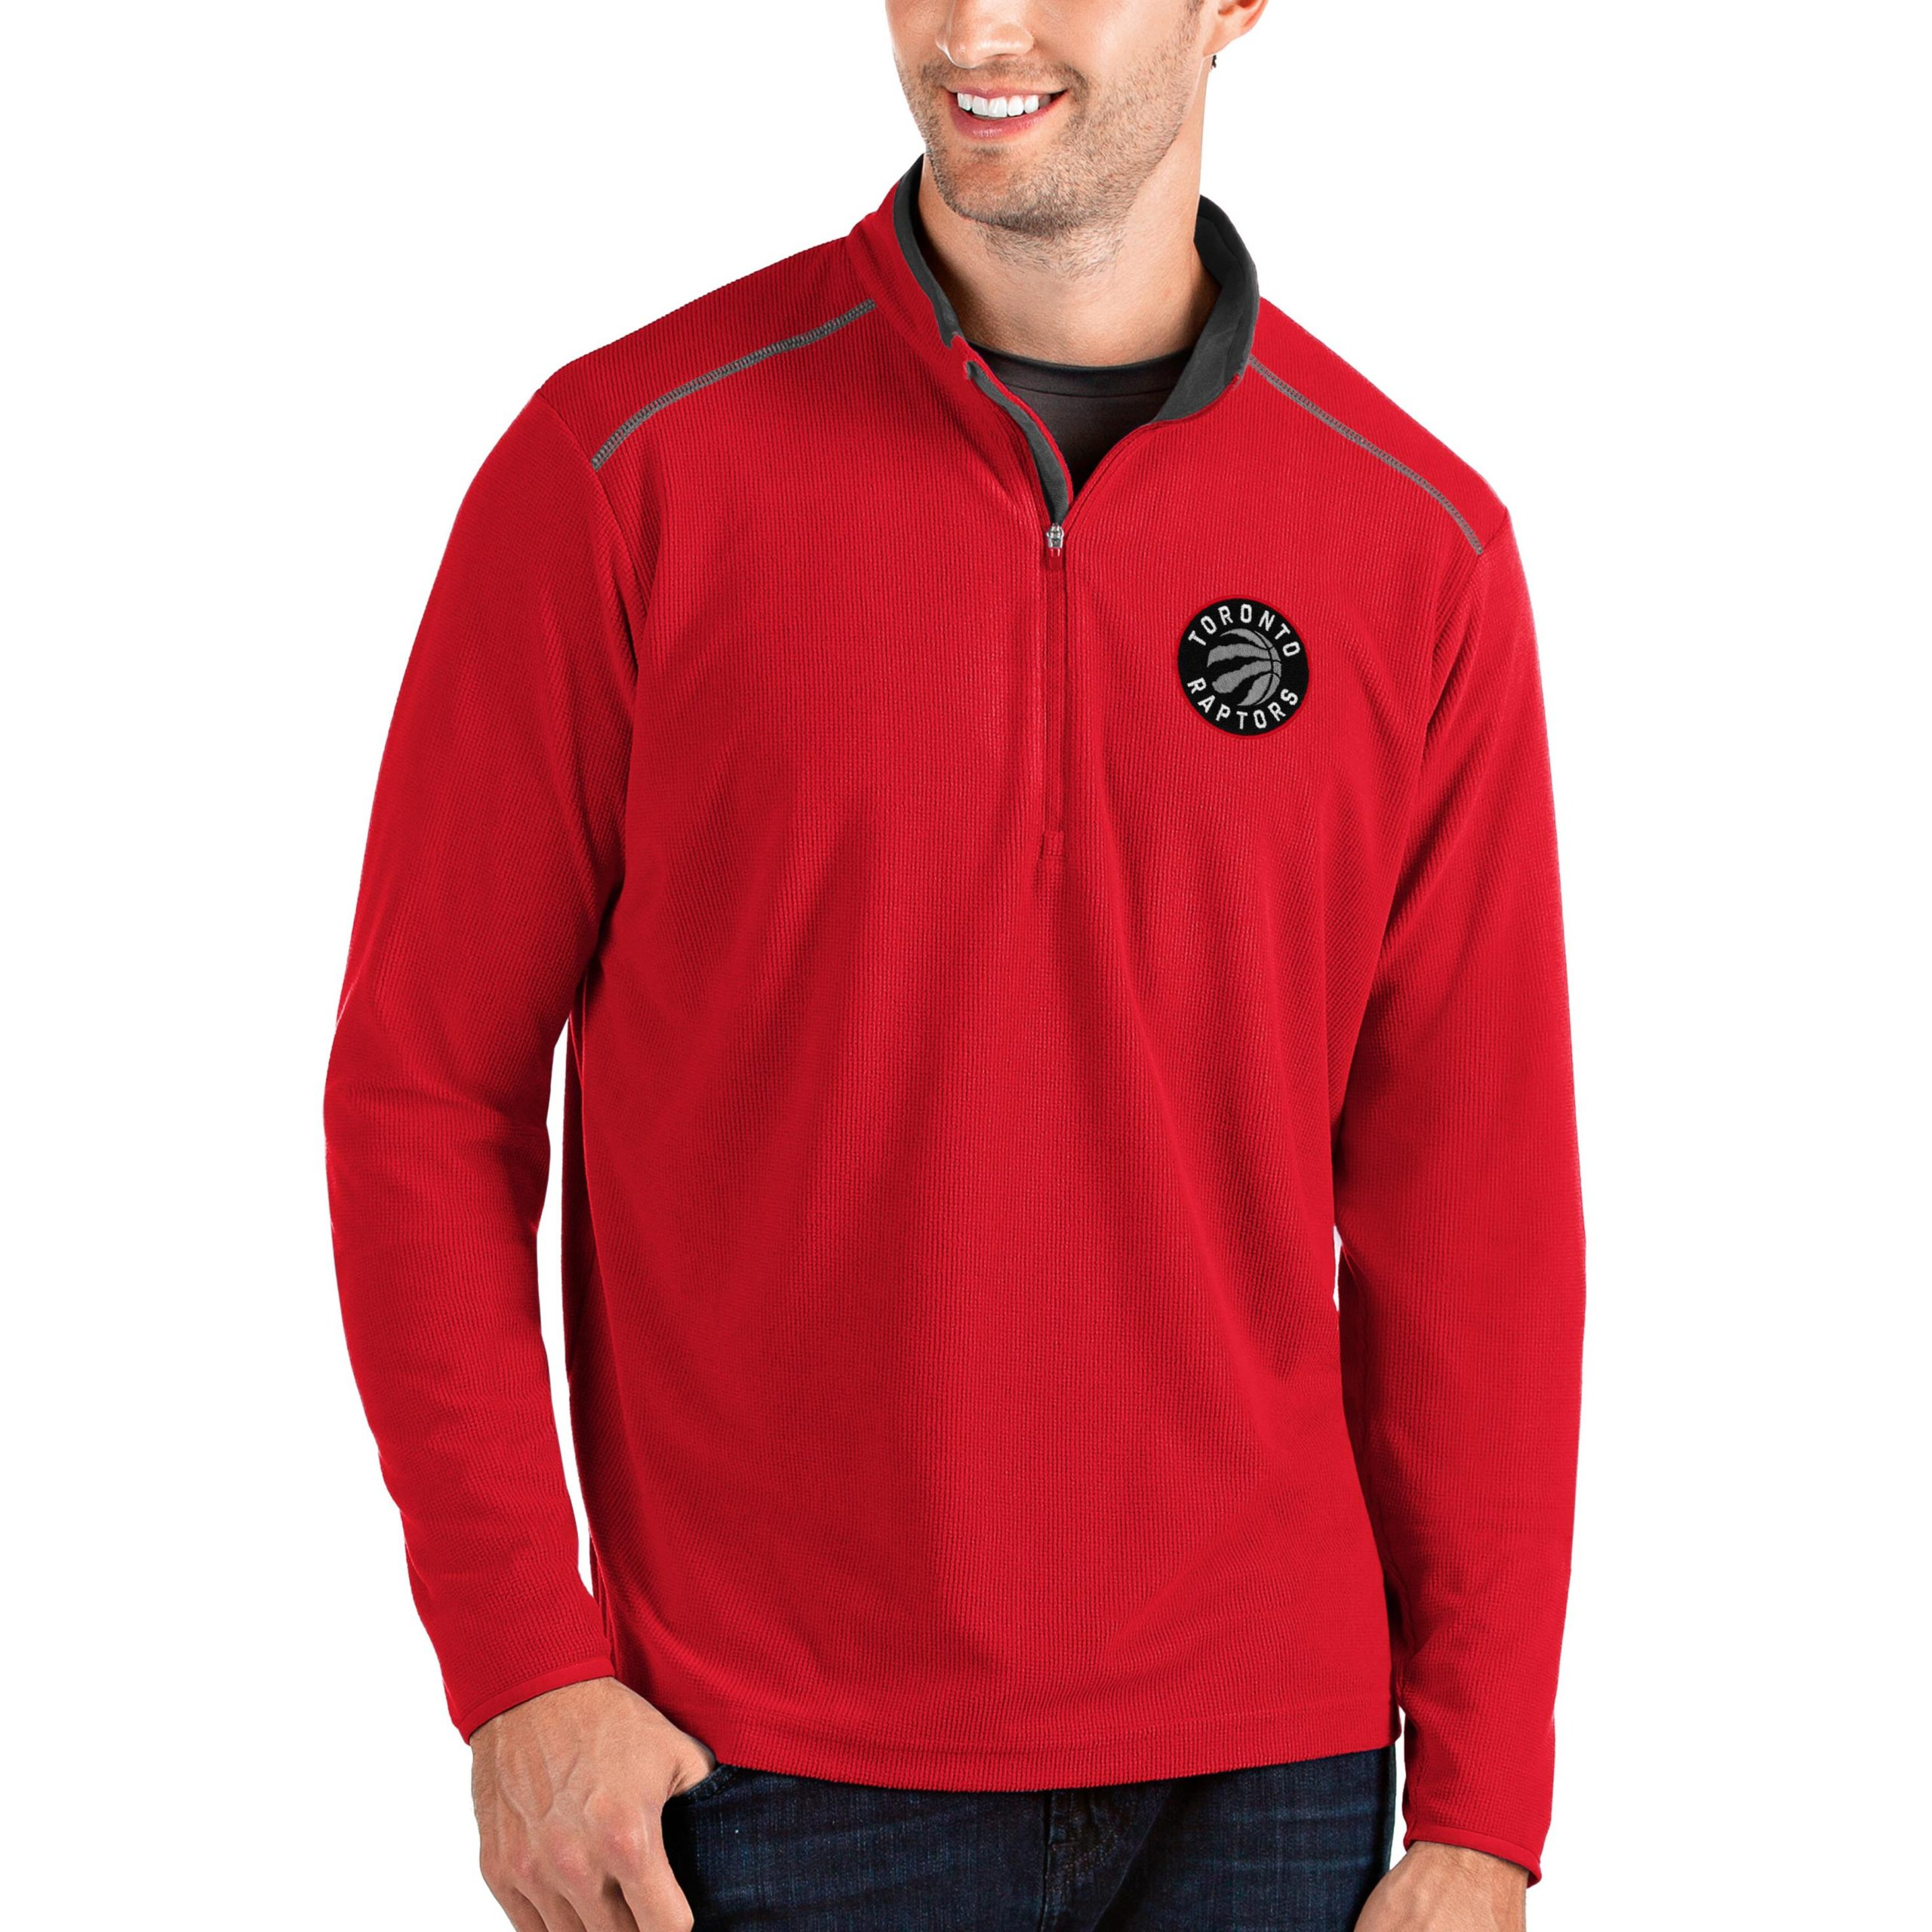 Toronto Raptors Antigua Big & Tall Glacier Quarter-Zip Pullover Jacket - Red/Gray